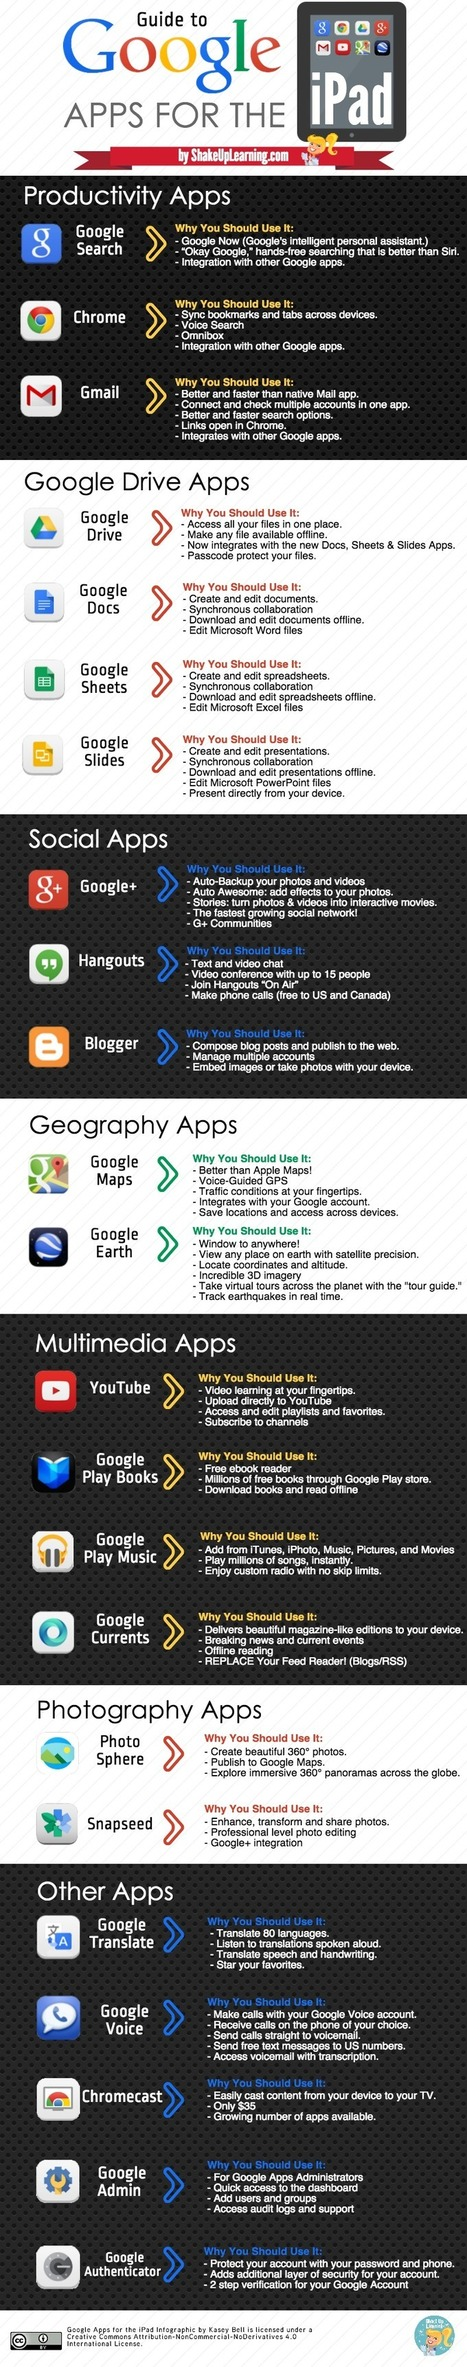 Guide to Google Apps for the iPad - Infographic | wilmington school libraries | Scoop.it